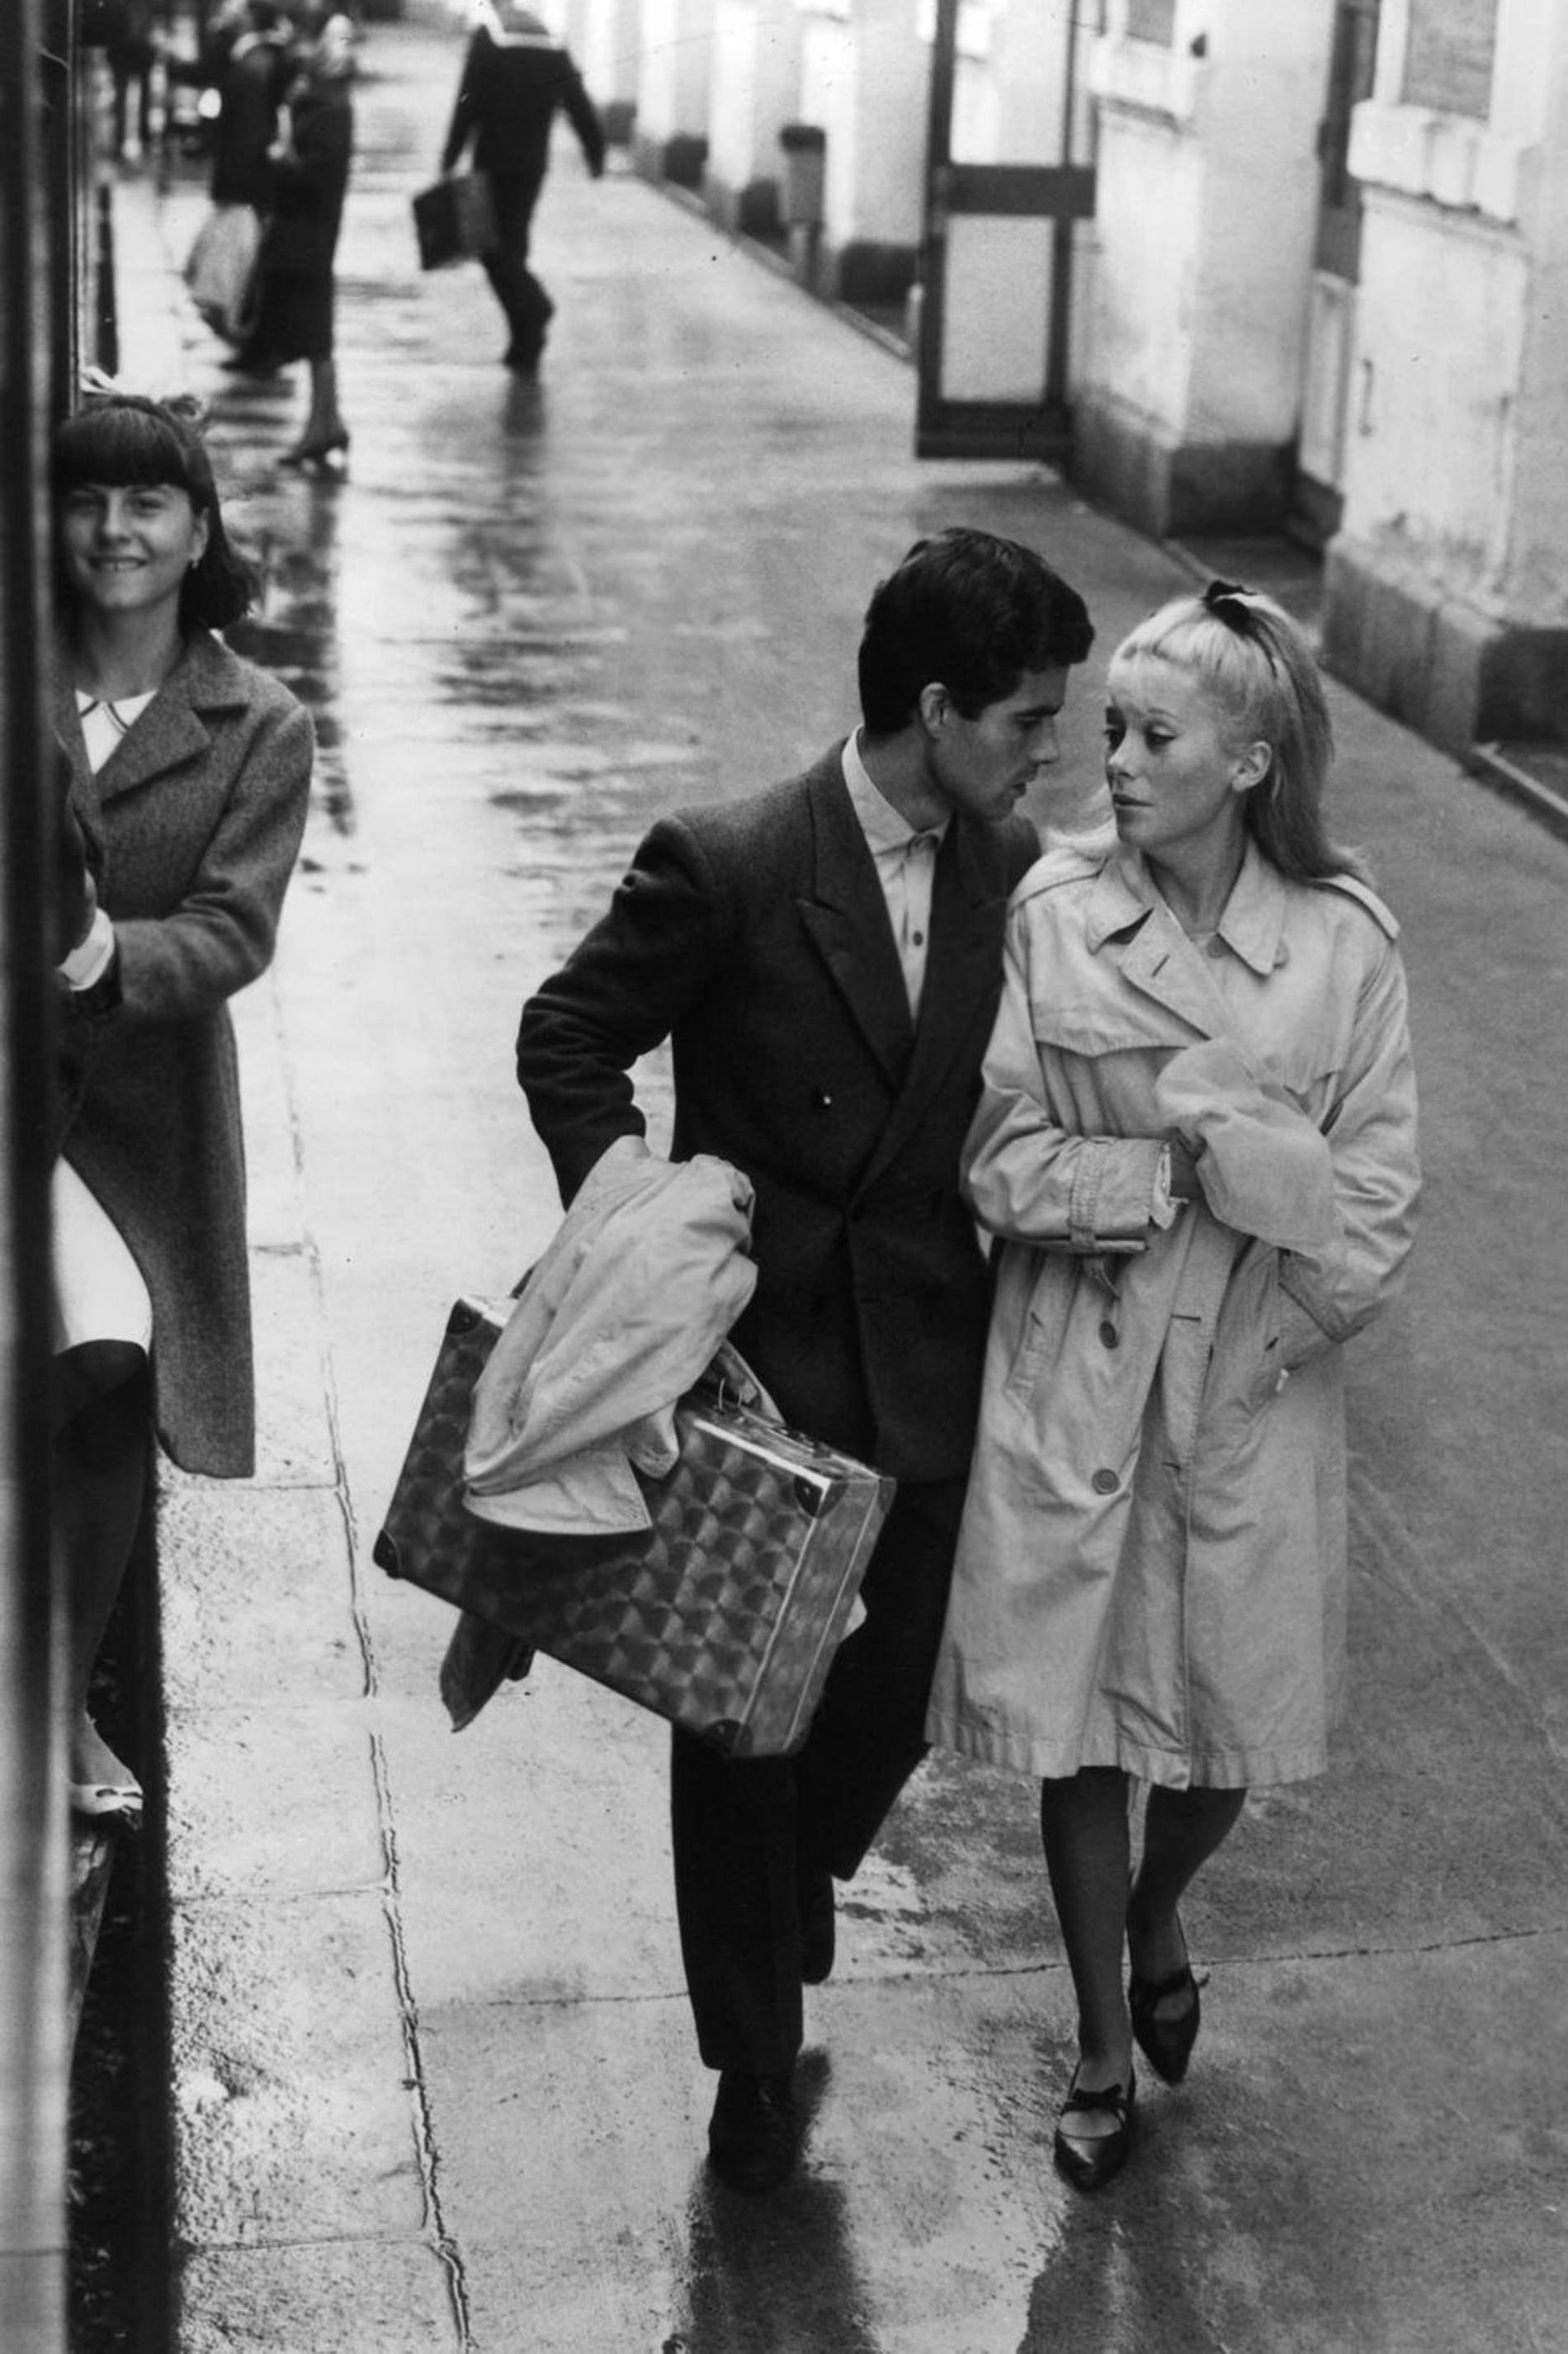 1554475694901691 catherine deneuve the umbrellas of cherbourg 1553616251